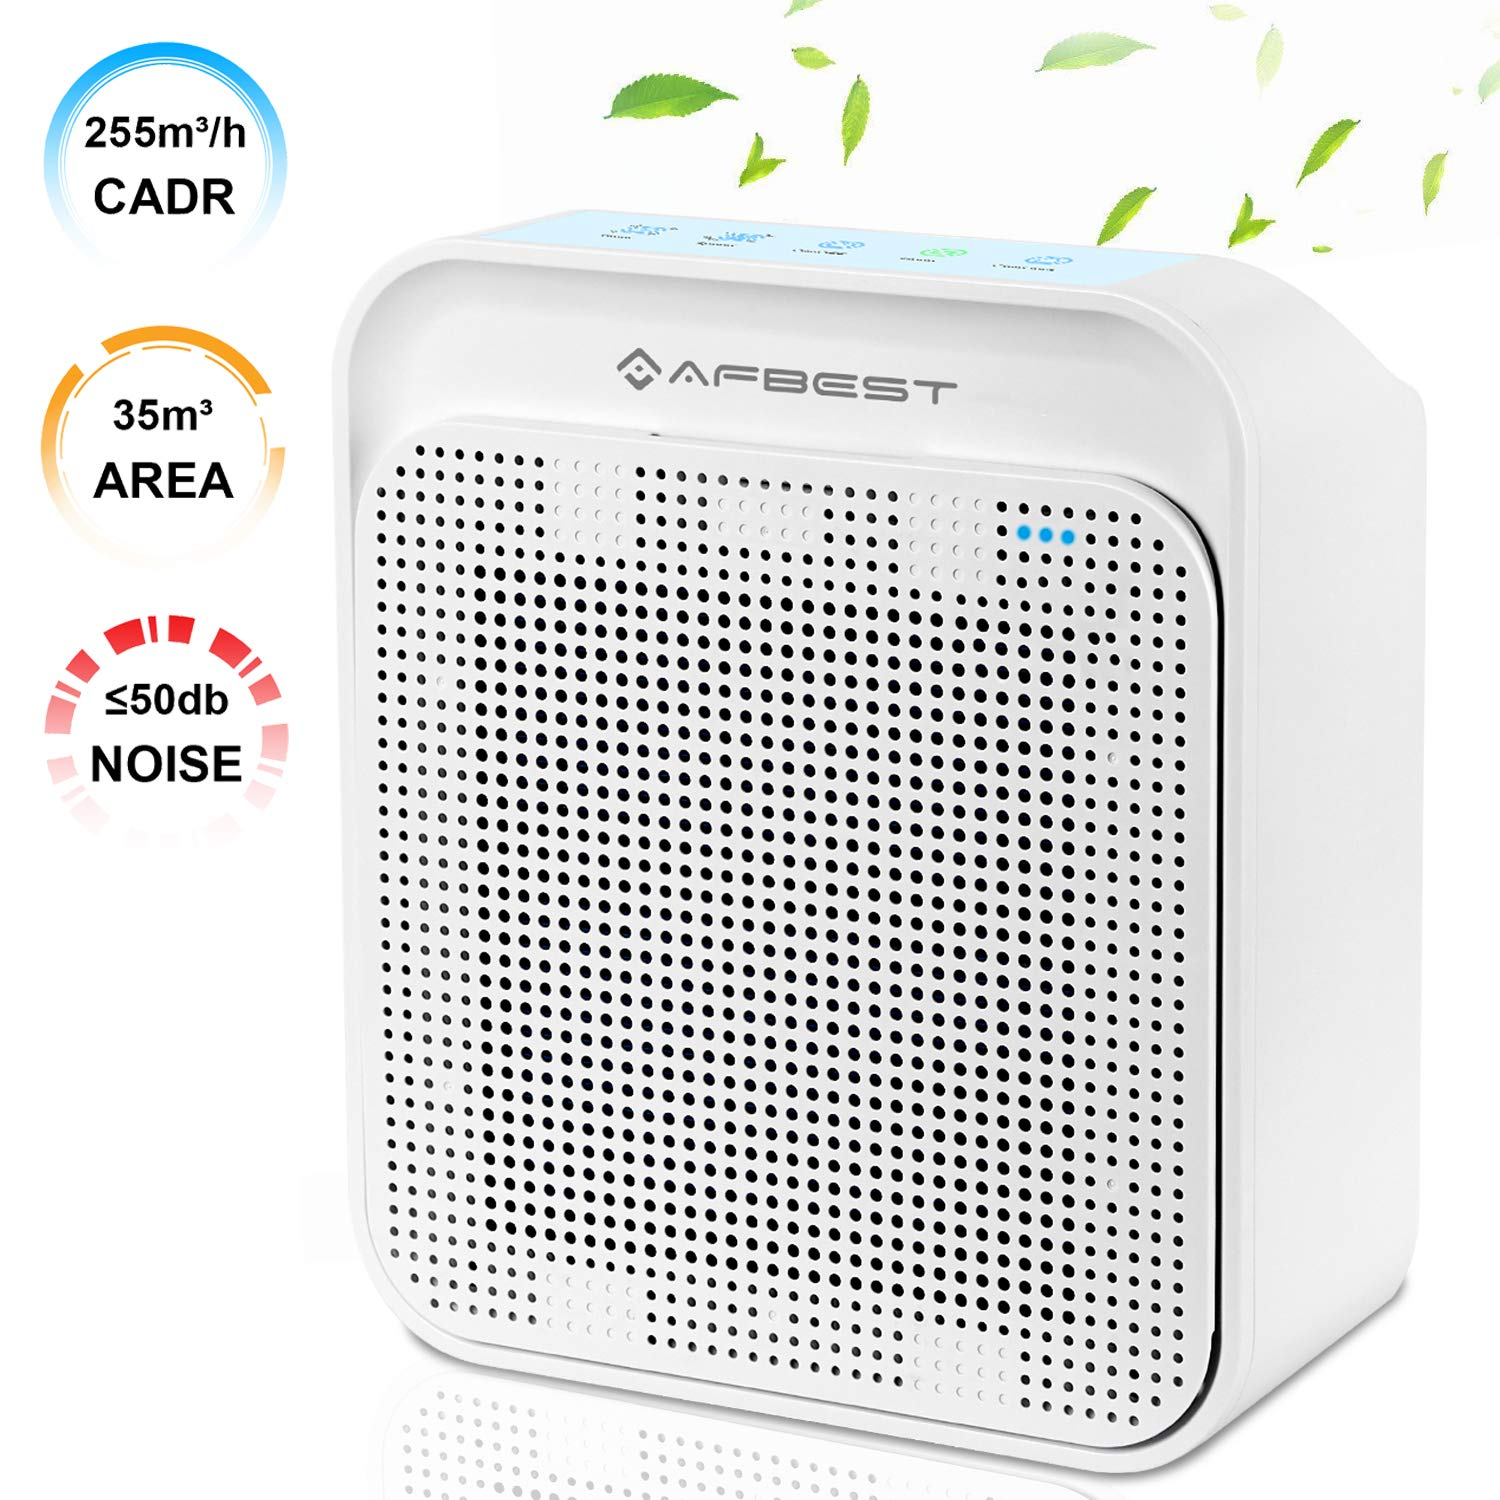 AFBEST Air Purifier with True HEPA & Active Carbon Filters, Odor Allergies Eliminator, PM2.5 Eliminator Cleaner for Allergies, Dust, Mold, Pets Dander, Smokers, Cooking, Powerful for Large Room (CADR 255), 35m²